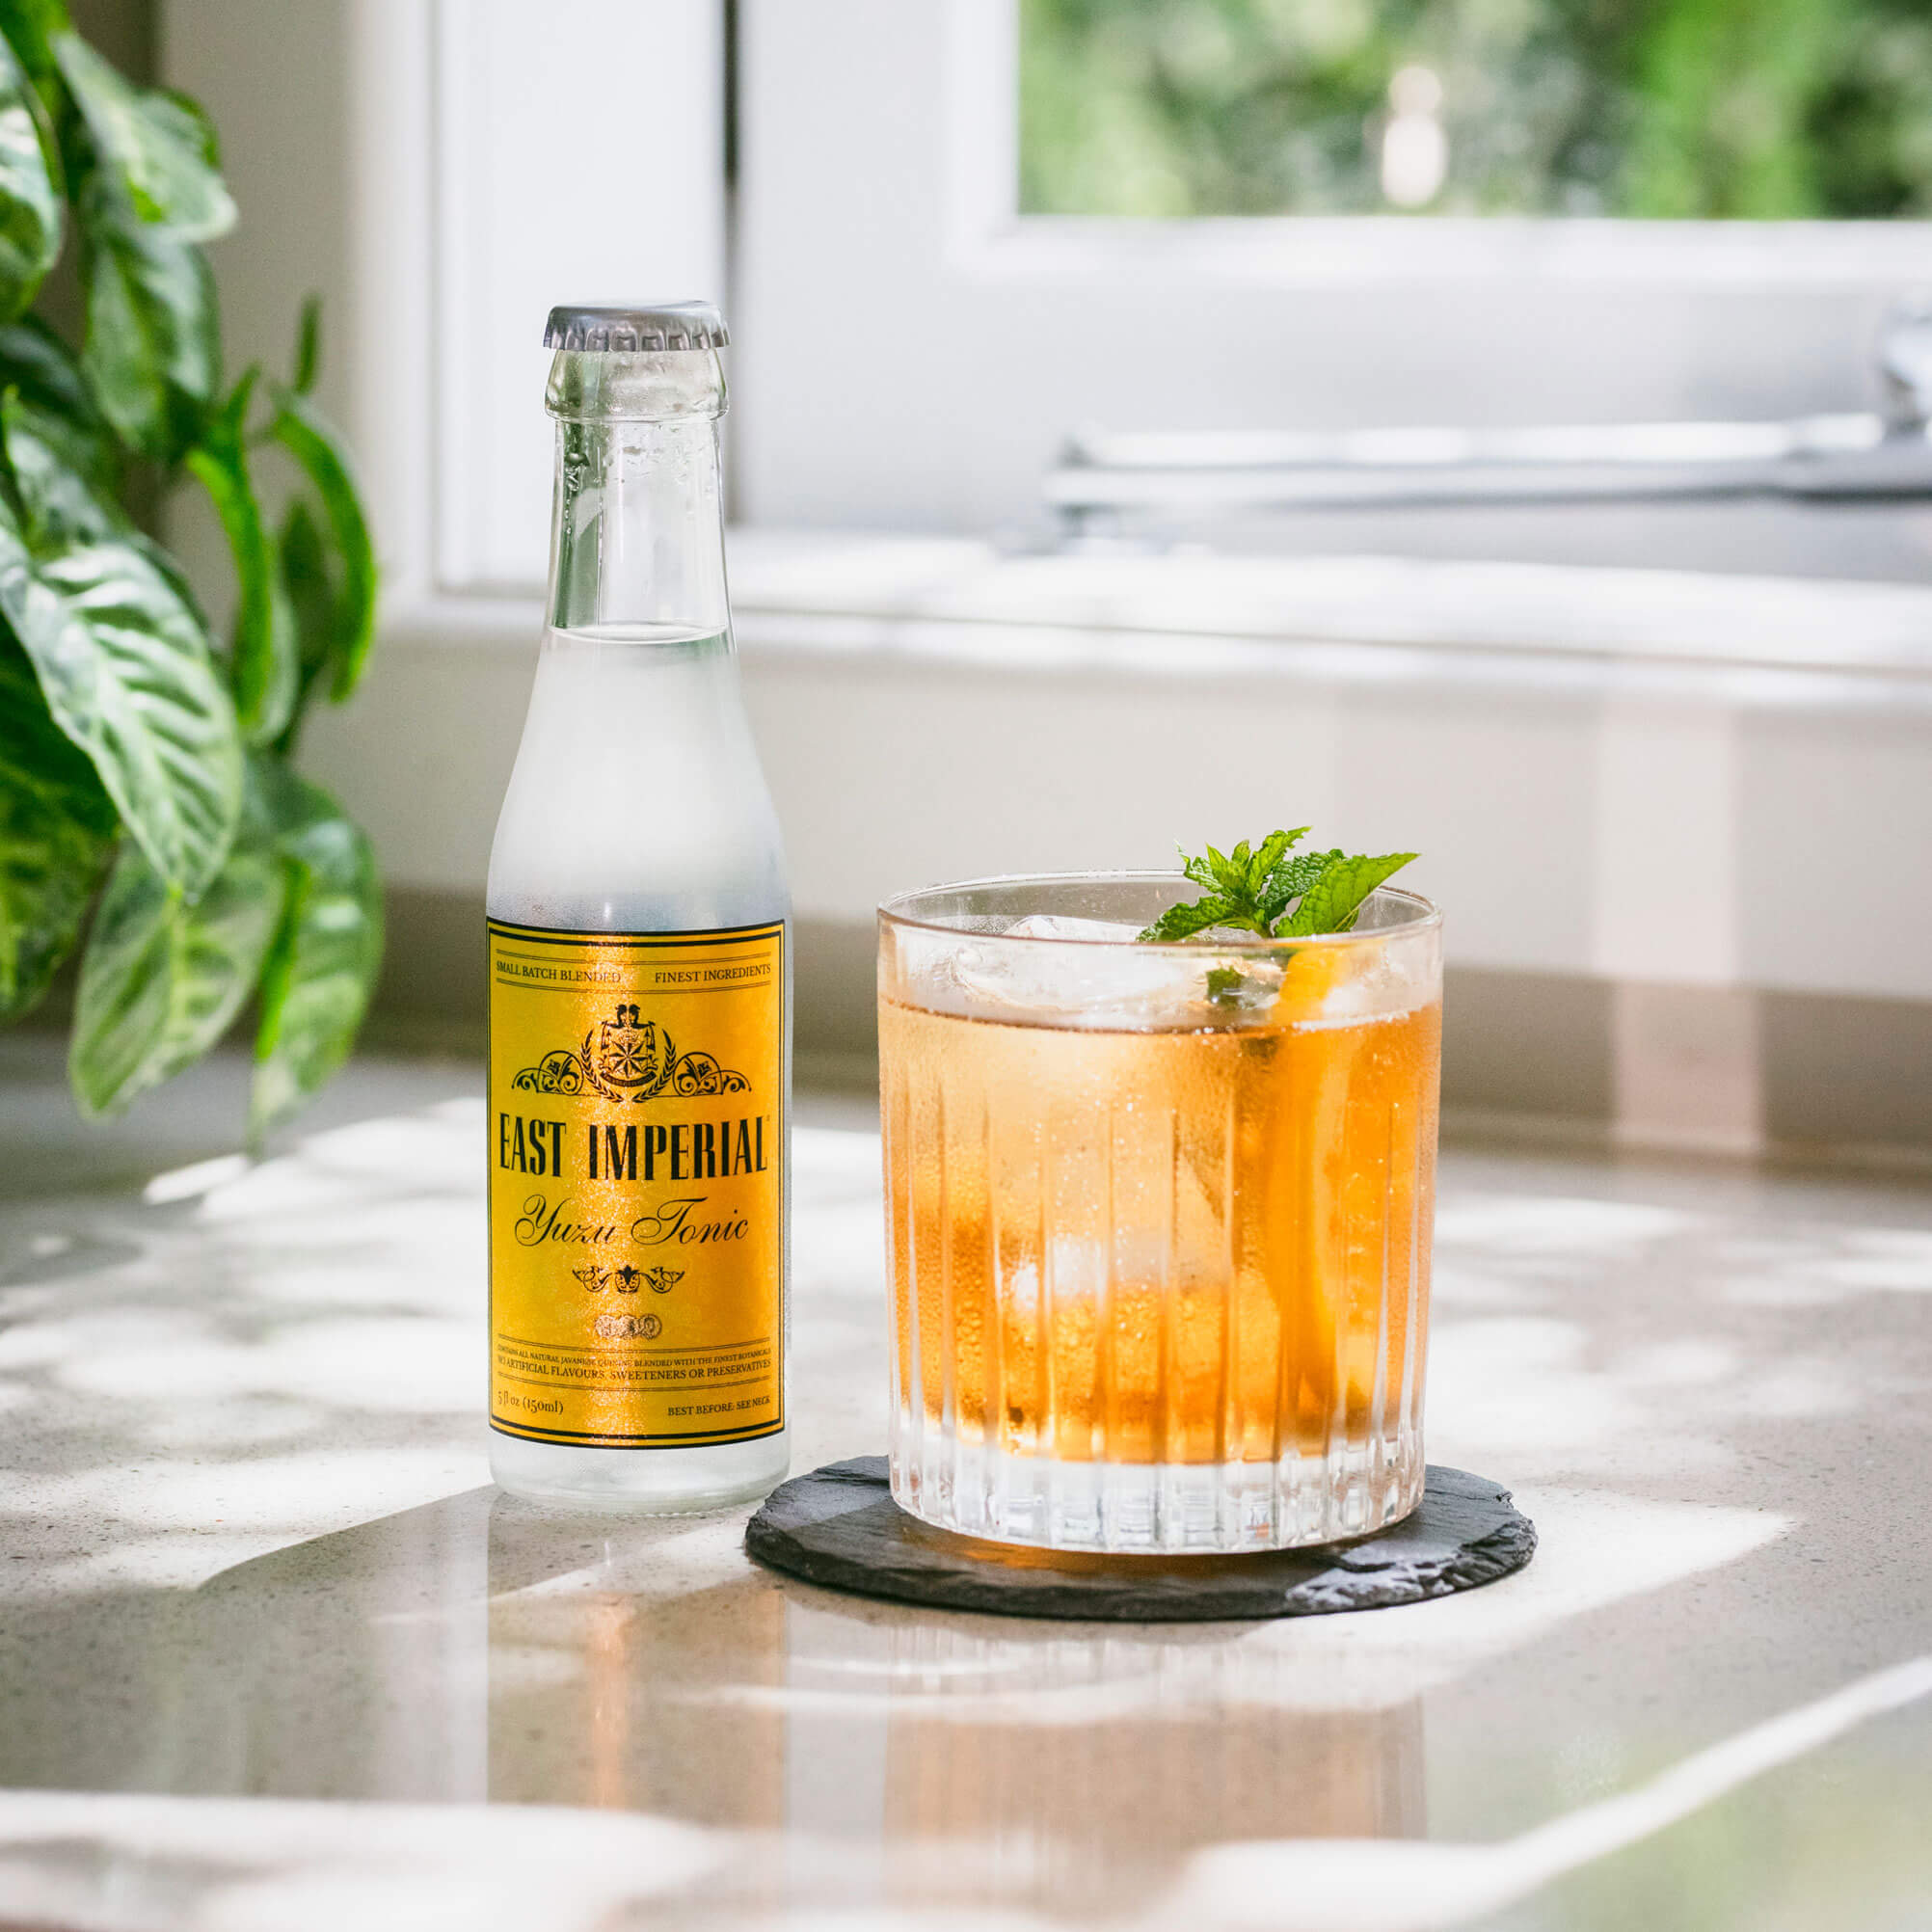 First Frost cocktail recipe with East Imperial Yuzu Tonic and Rutte Sloe Gin